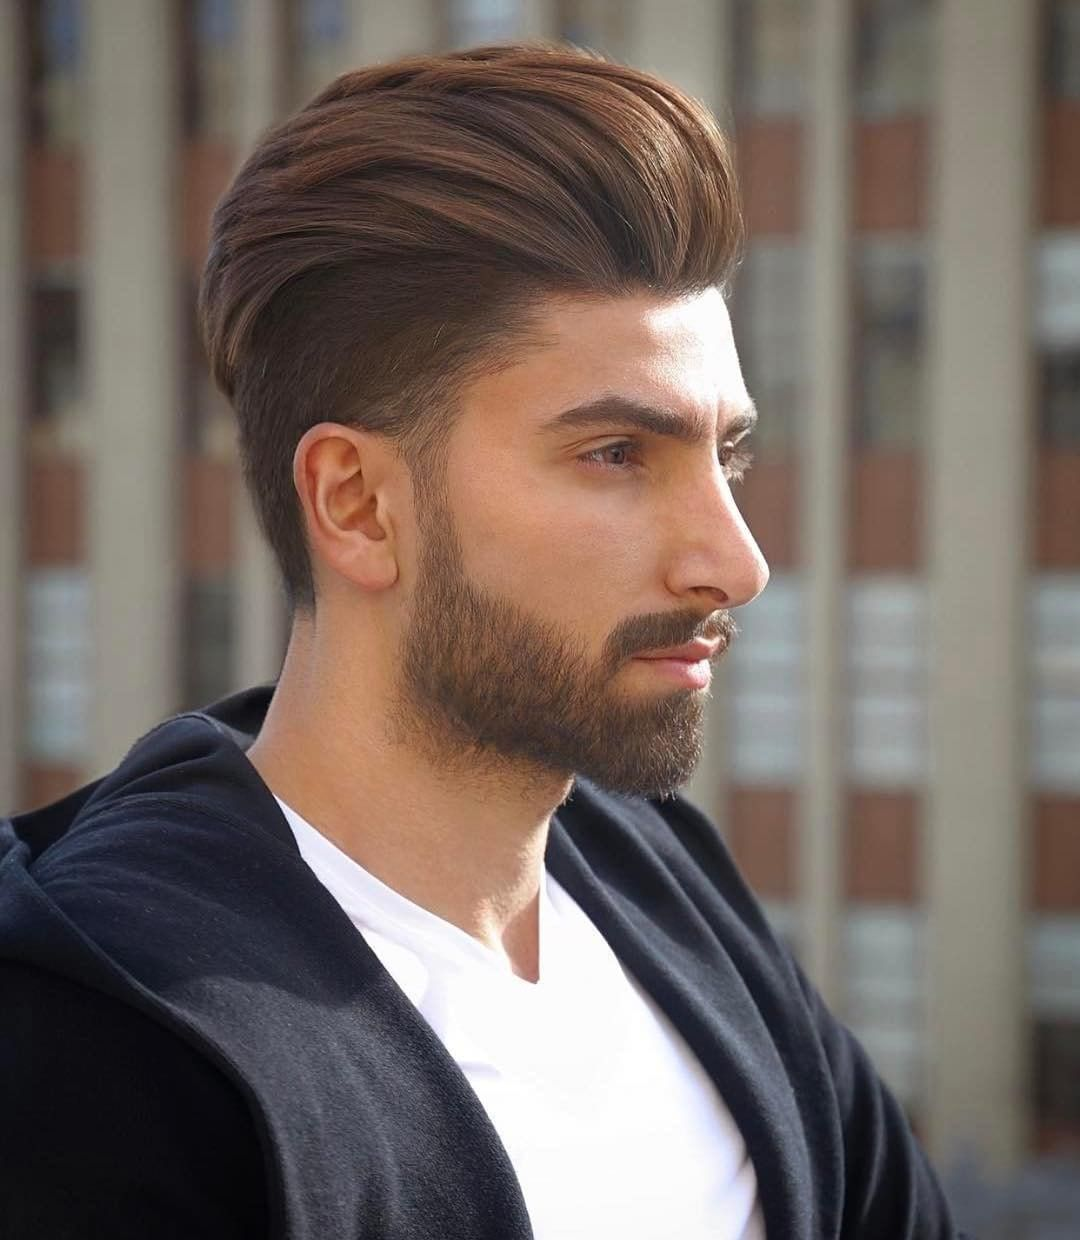 Undercut With A High Volume Backcombed Pompadour The Latest Hairstyles For Men And Women 2020 Hairstyleology Mens Hairstyles Undercut Undercut Hairstyles Undercut Long Hair